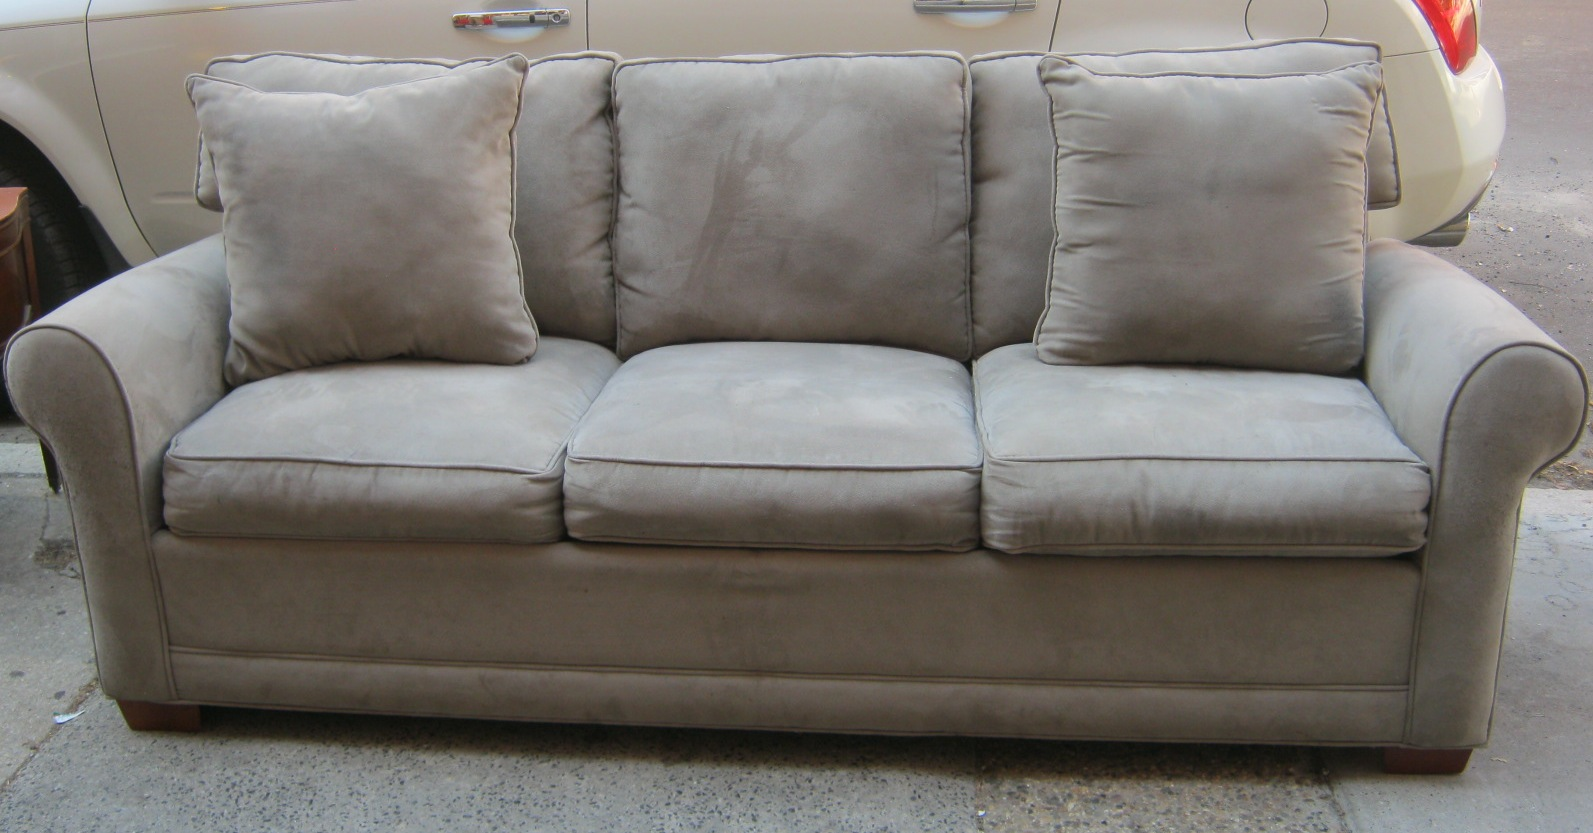 Delightful Grey Microfiber Sofa Bed   Sold